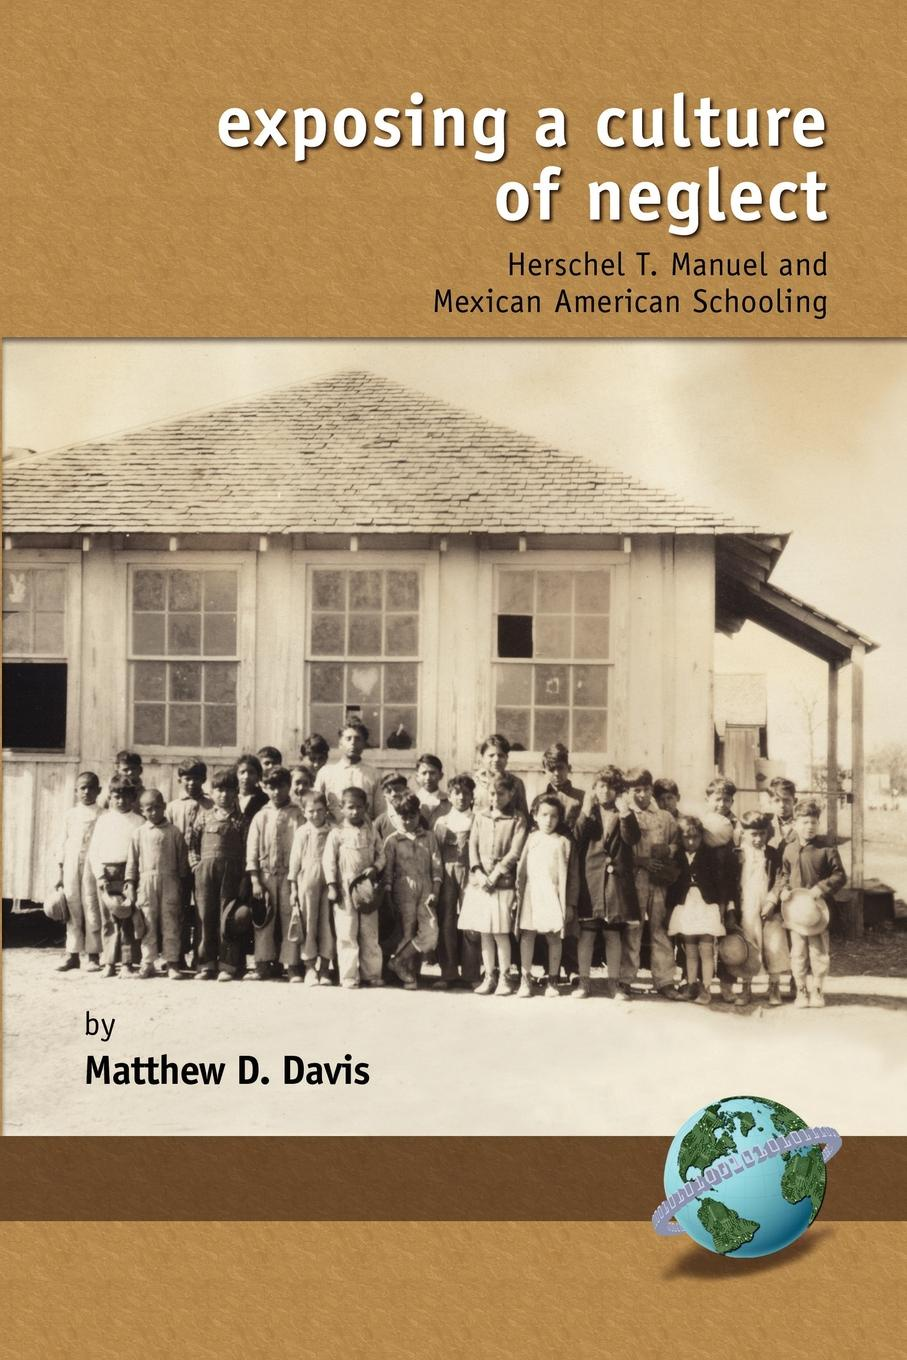 Matthew D. Davis Exposing a Culture of Negelct. Herschel T. Manuel and Mexican American Schooling (PB) william beezley h a companion to mexican history and culture